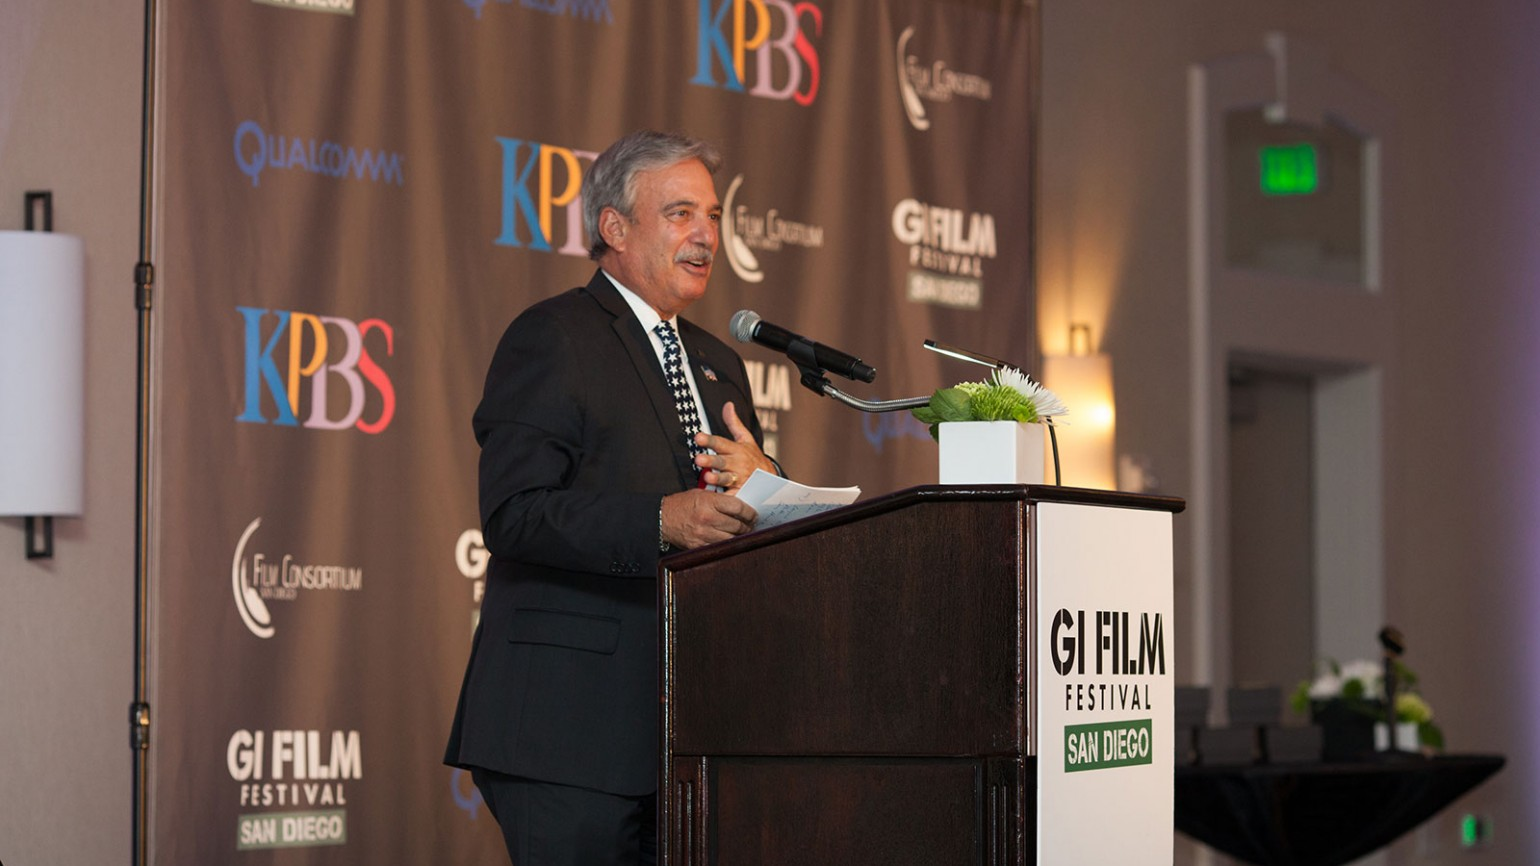 KPBS General Manager Tom Karlo remarks during the closing celebration.